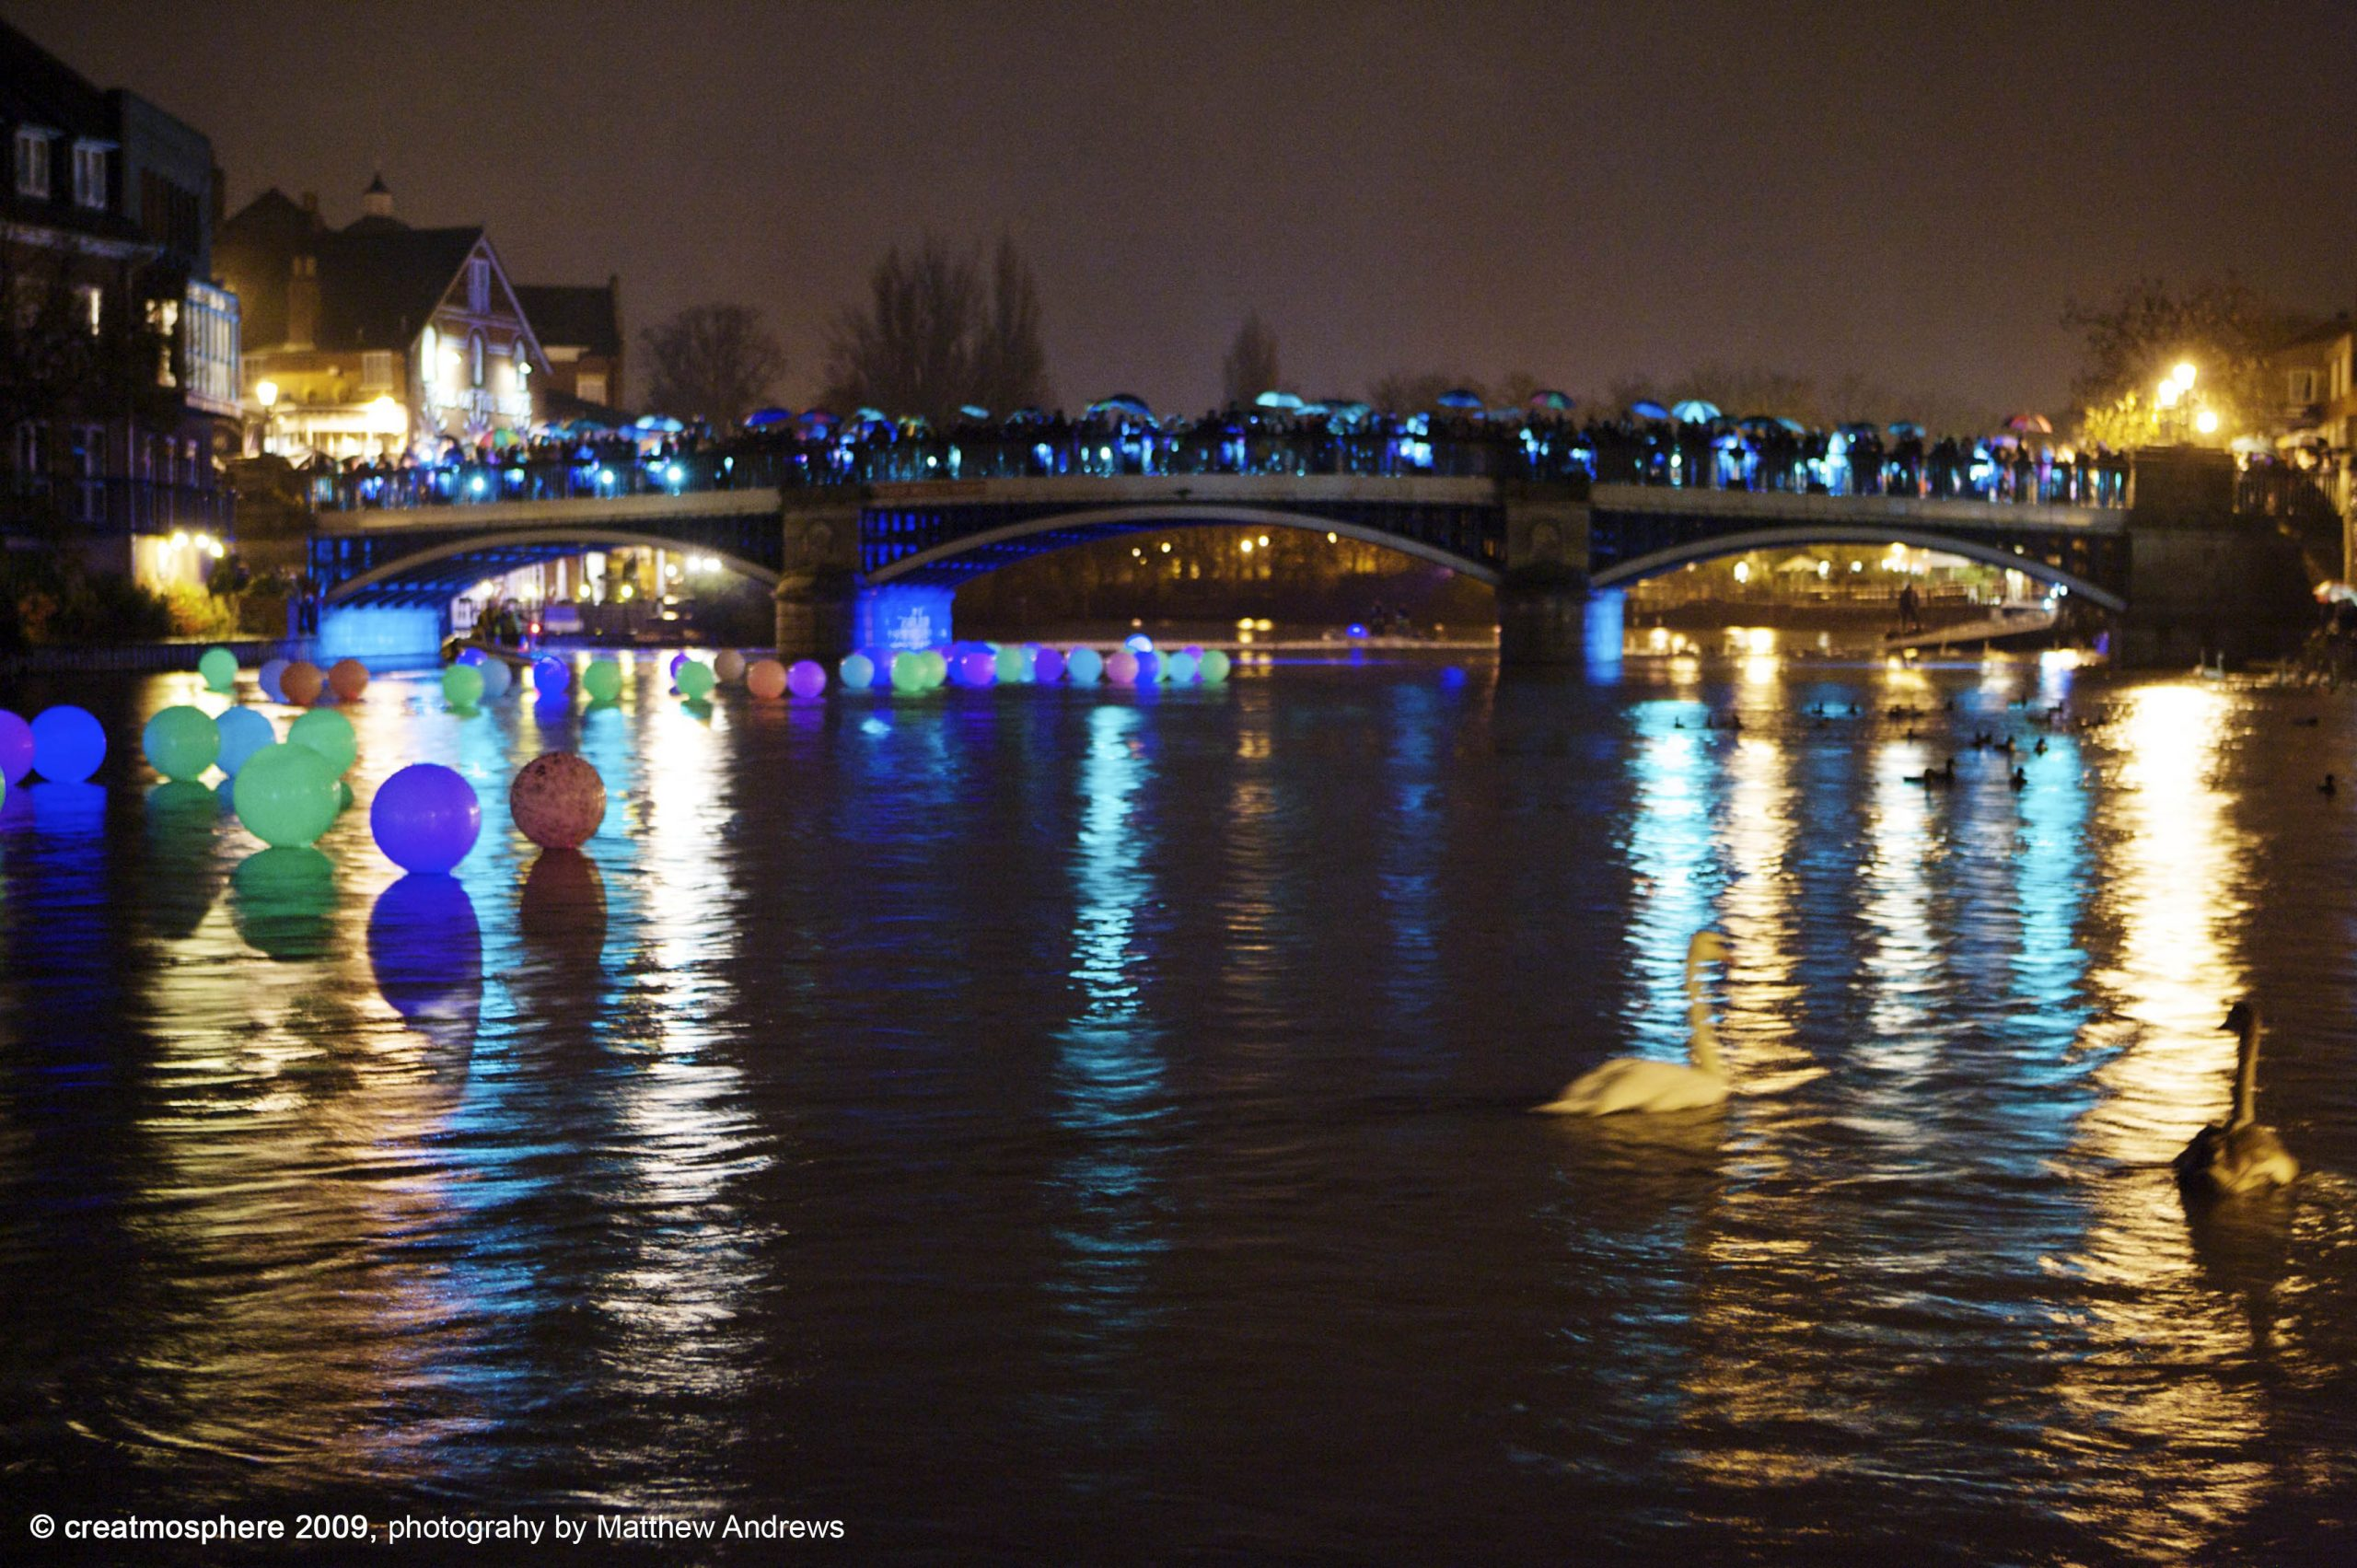 River of Light by Creatmosphere